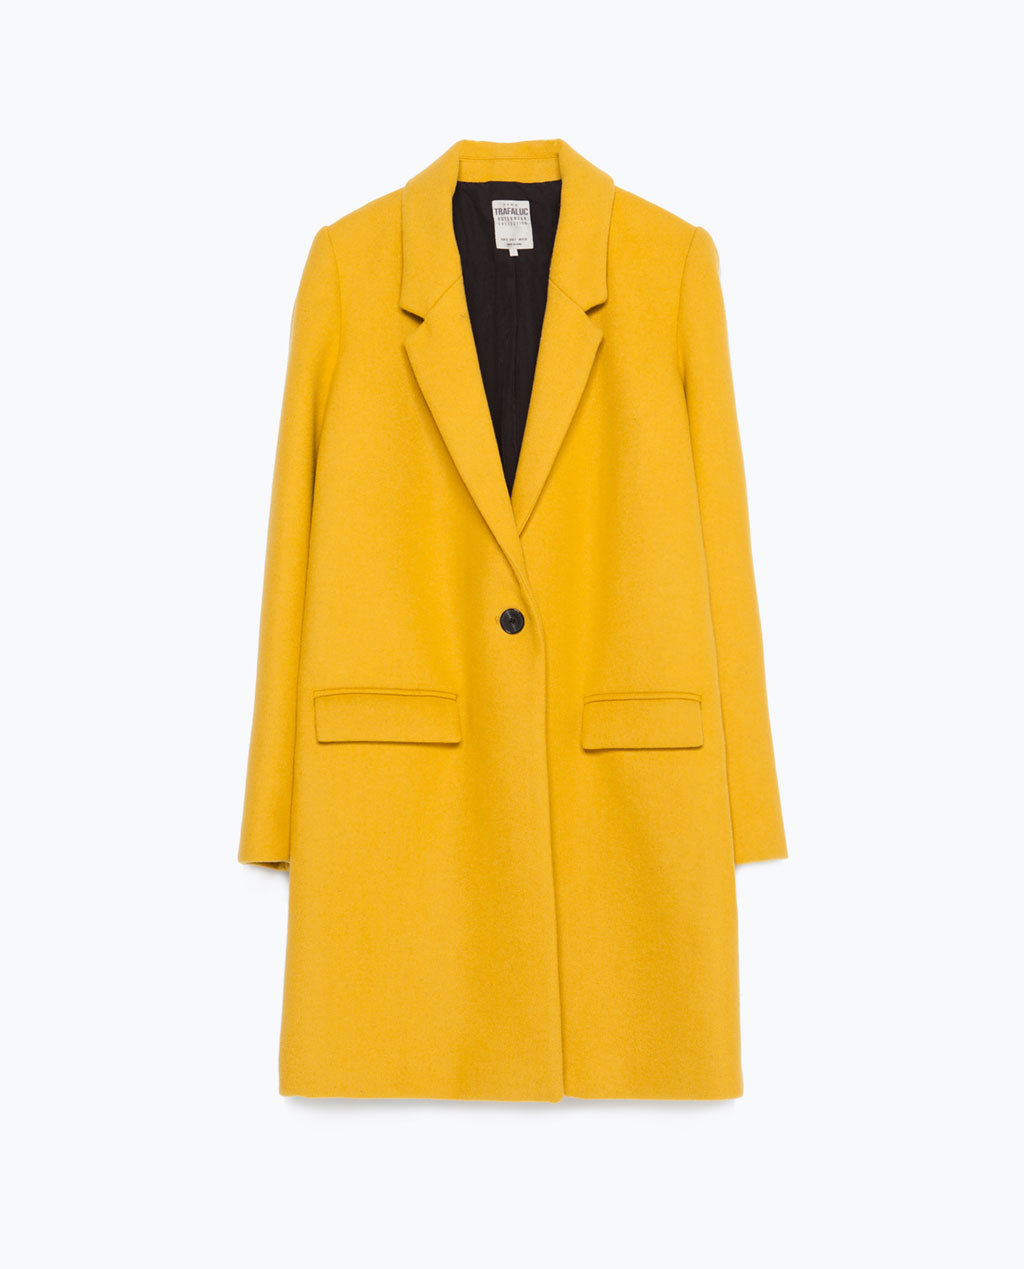 Masculine Coat - pattern: plain; style: single breasted; collar: standard lapel/rever collar; length: mid thigh; predominant colour: yellow; fit: straight cut (boxy); sleeve length: long sleeve; sleeve style: standard; collar break: low/open; pattern type: fabric; texture group: woven bulky/heavy; occasions: creative work; season: a/w 2015; wardrobe: highlight